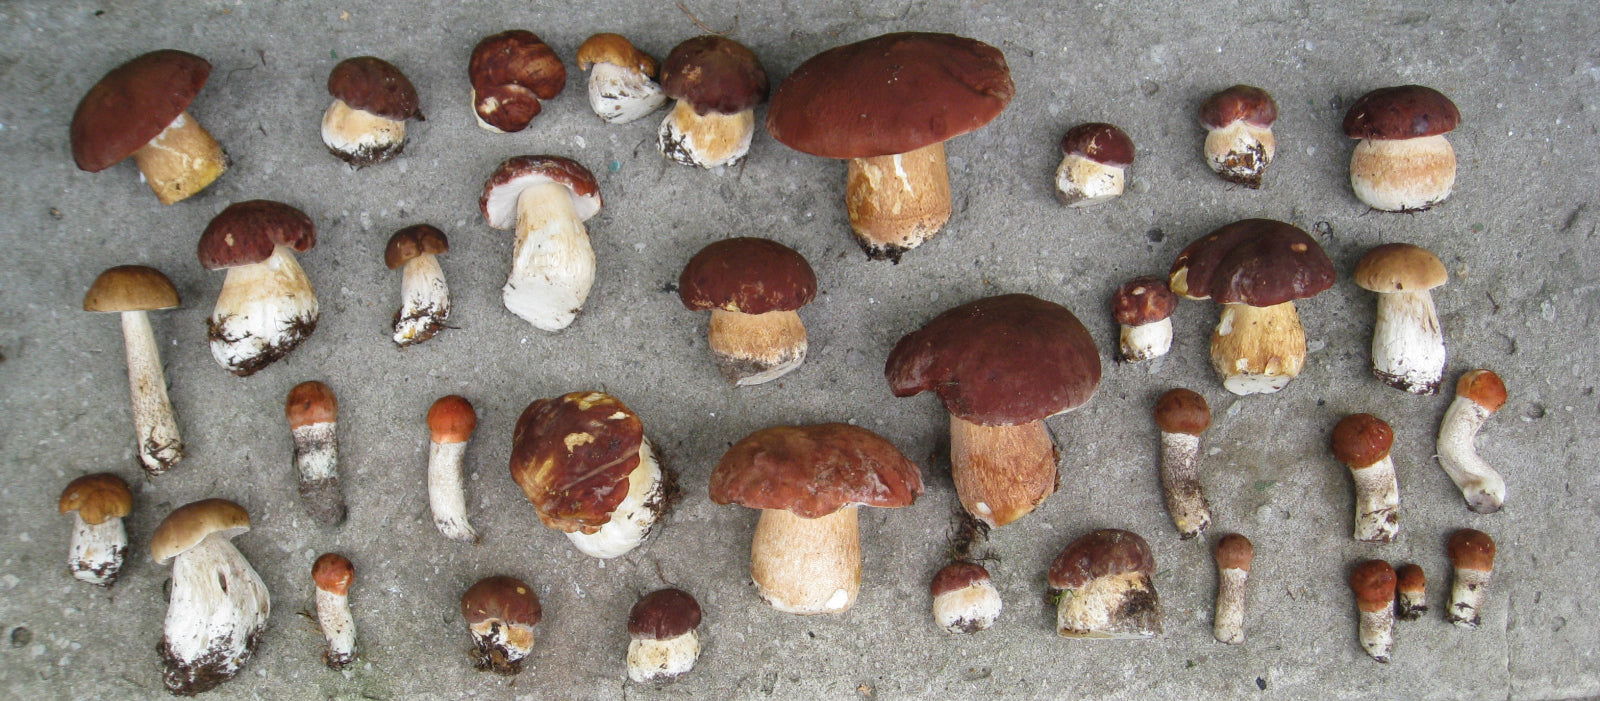 A selection of small brown mushrooms